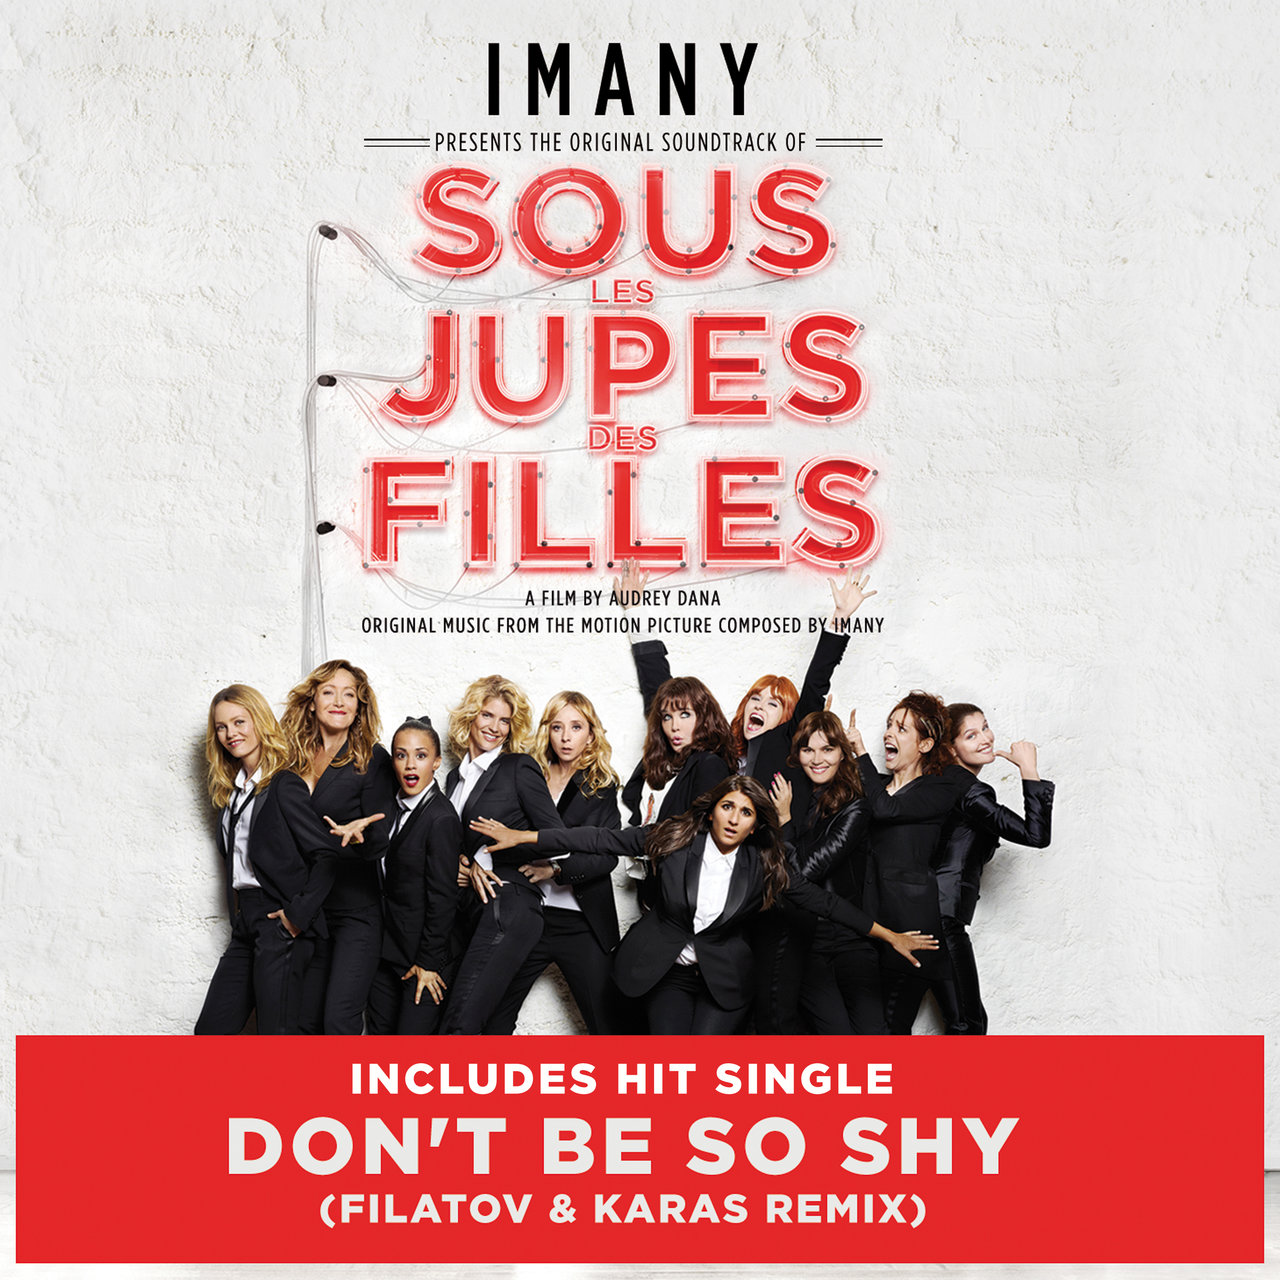 Sous les jupes des filles (Original Motion Picture Soundtrack) [Bonus Track Version]